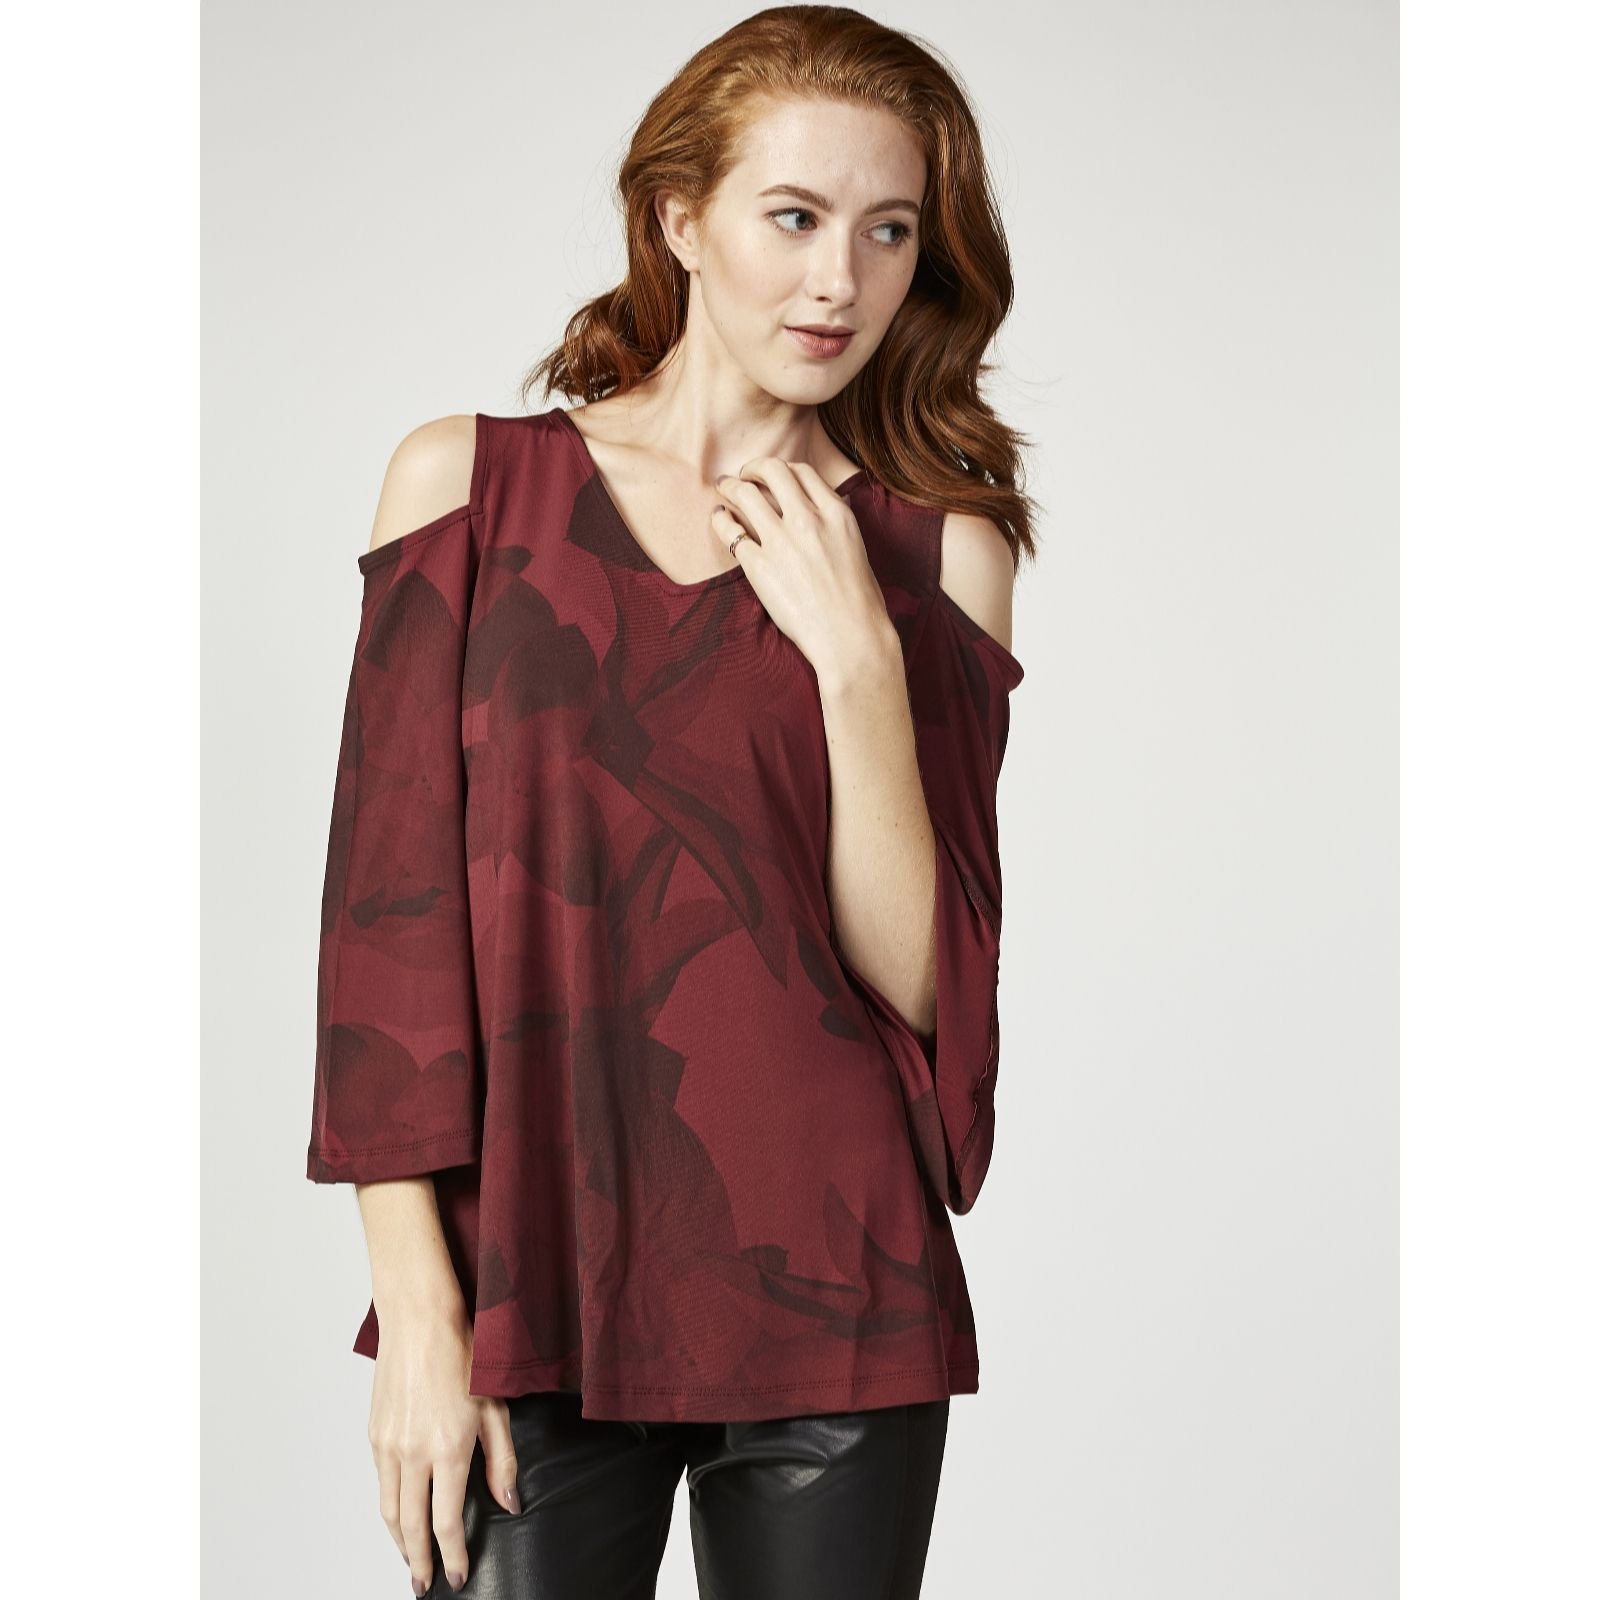 4156217bf63968 H by Halston Printed Cold Shoulder Top with Flutter Sleeves - QVC UK